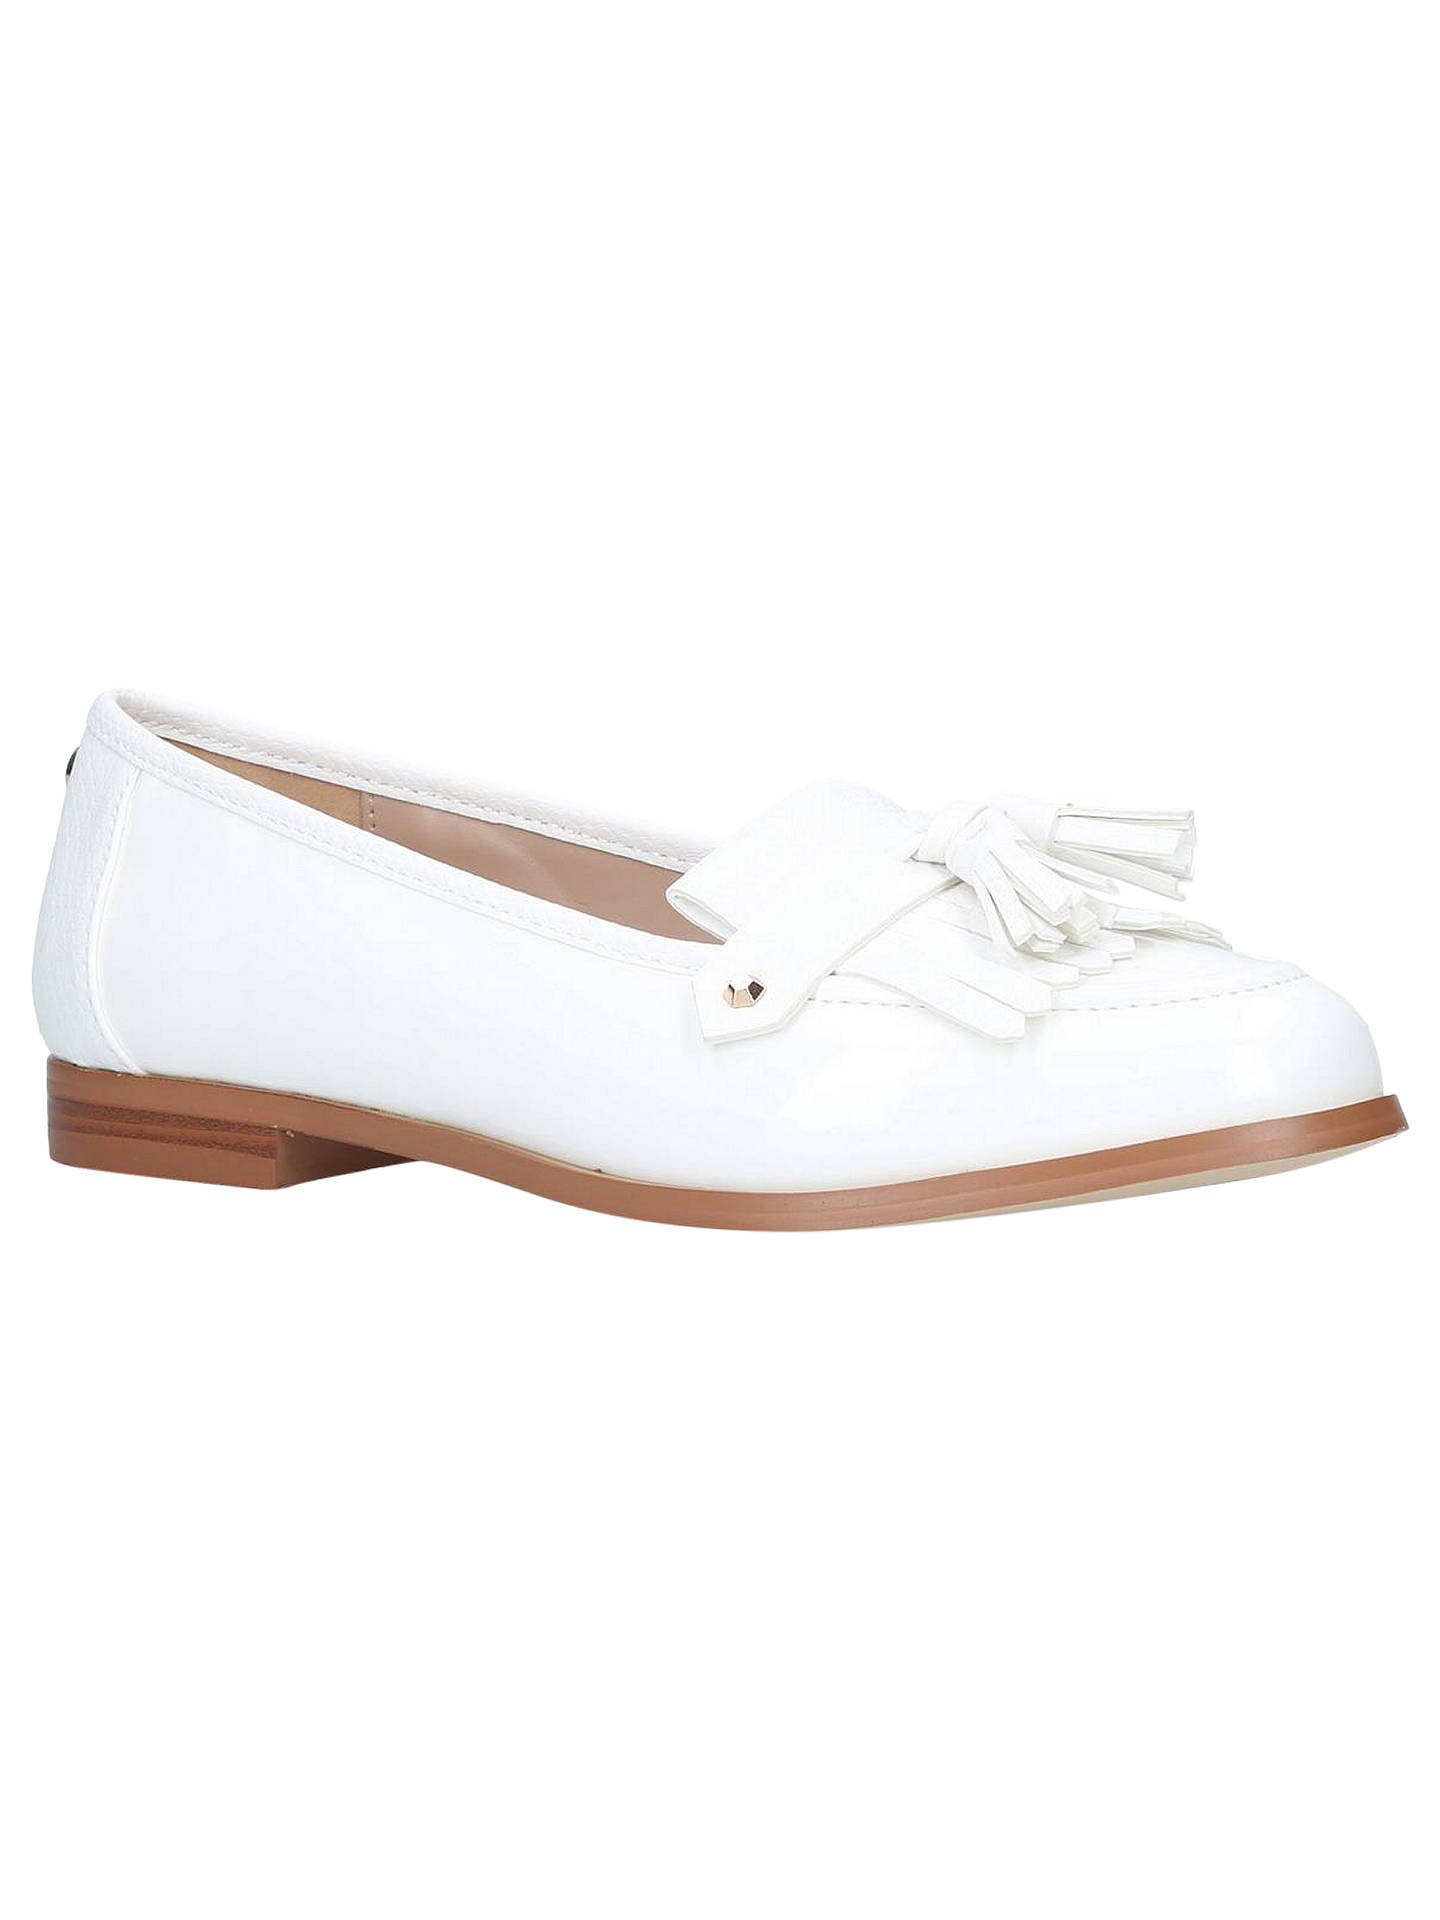 big clearance sale on wholesale 2019 clearance sale Carvela Magpie Tassel Loafers, White at John Lewis & Partners